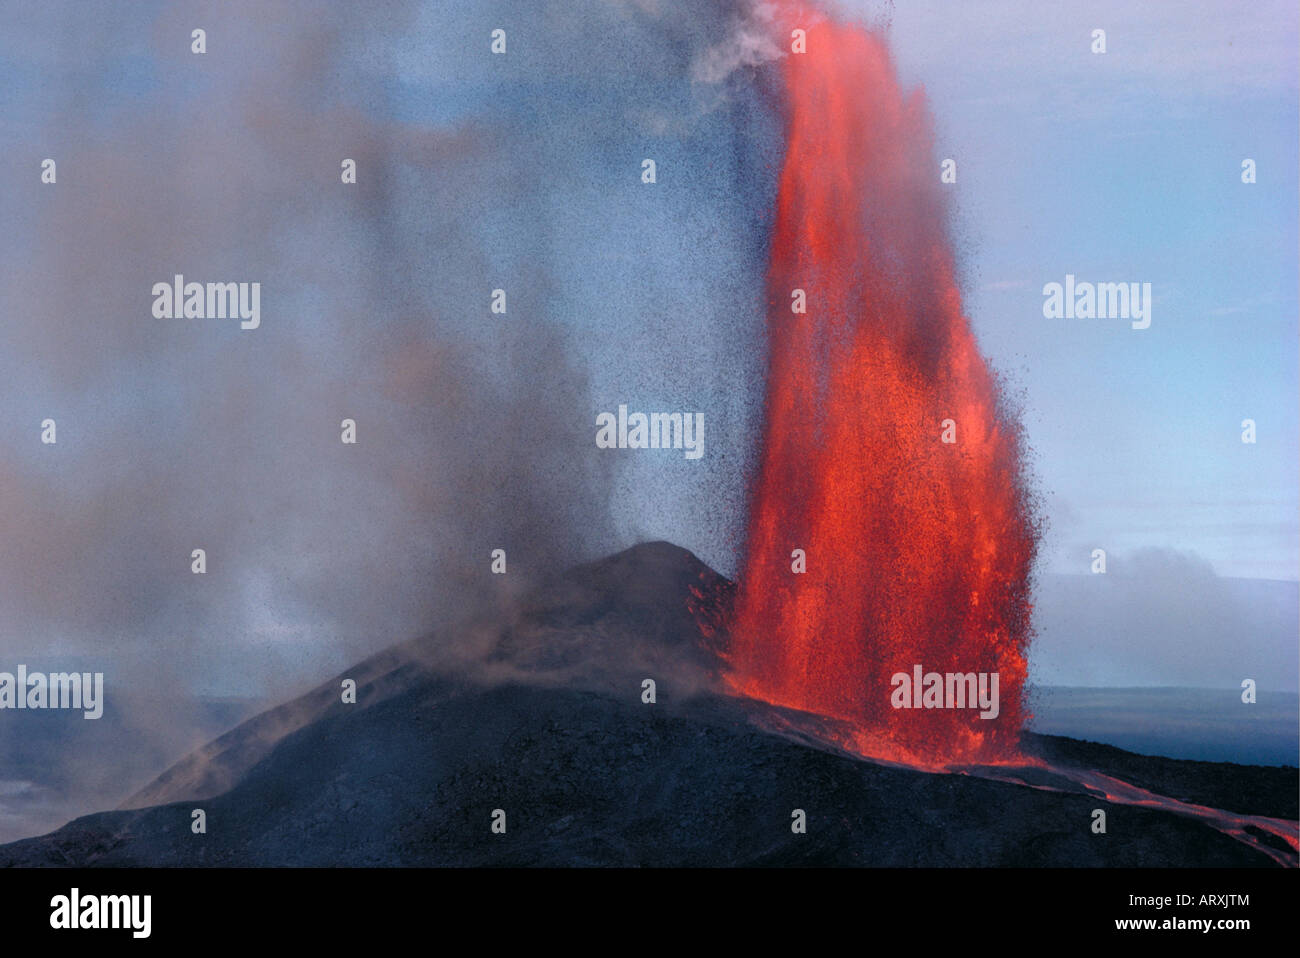 Kilauea volcano with fountaining eruption, Big Island of Hawaii - Stock Image